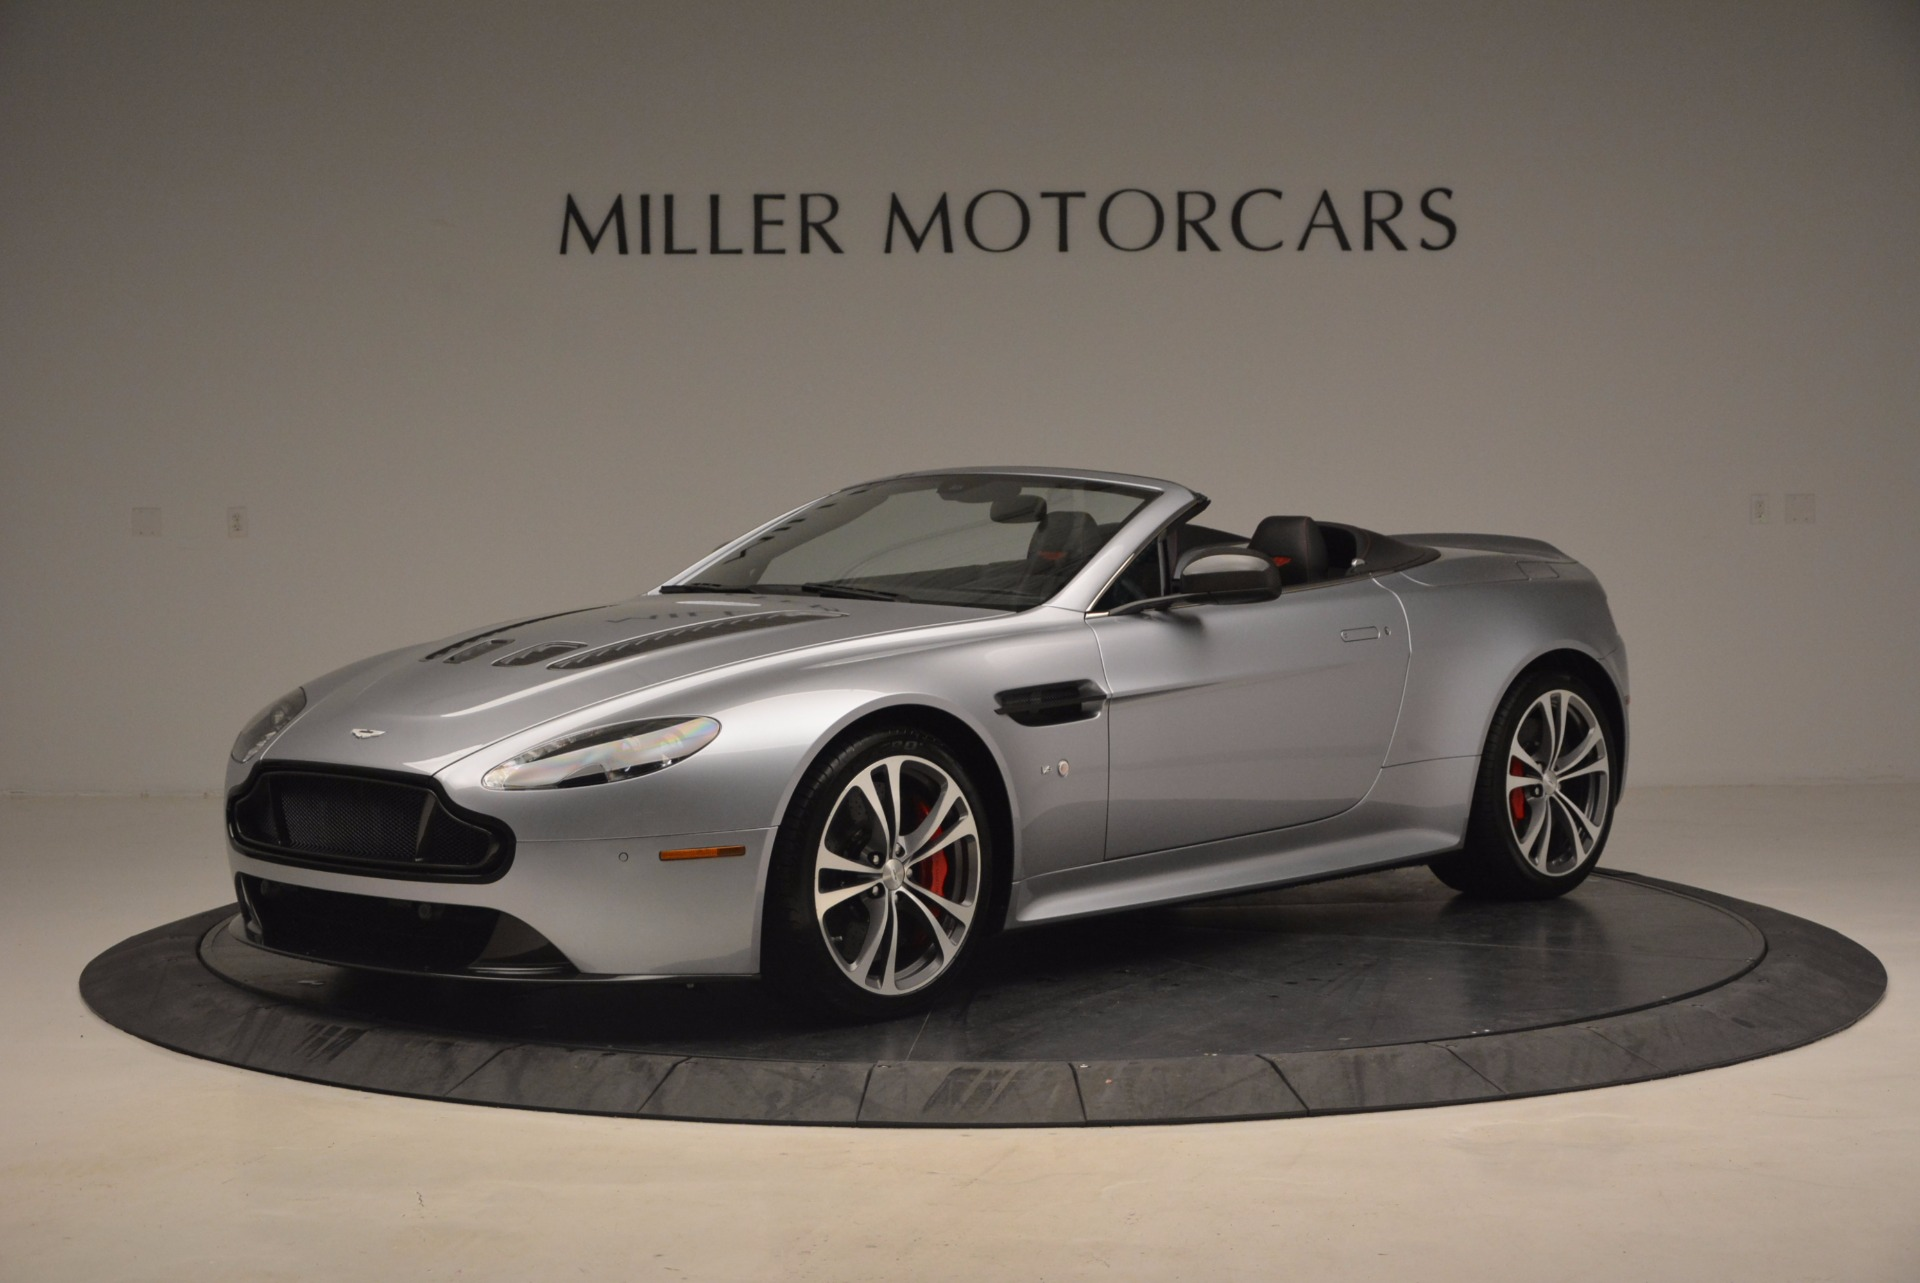 Used 2015 Aston Martin V12 Vantage S Roadster For Sale In Greenwich, CT. Alfa Romeo of Greenwich, 7197 1130_main